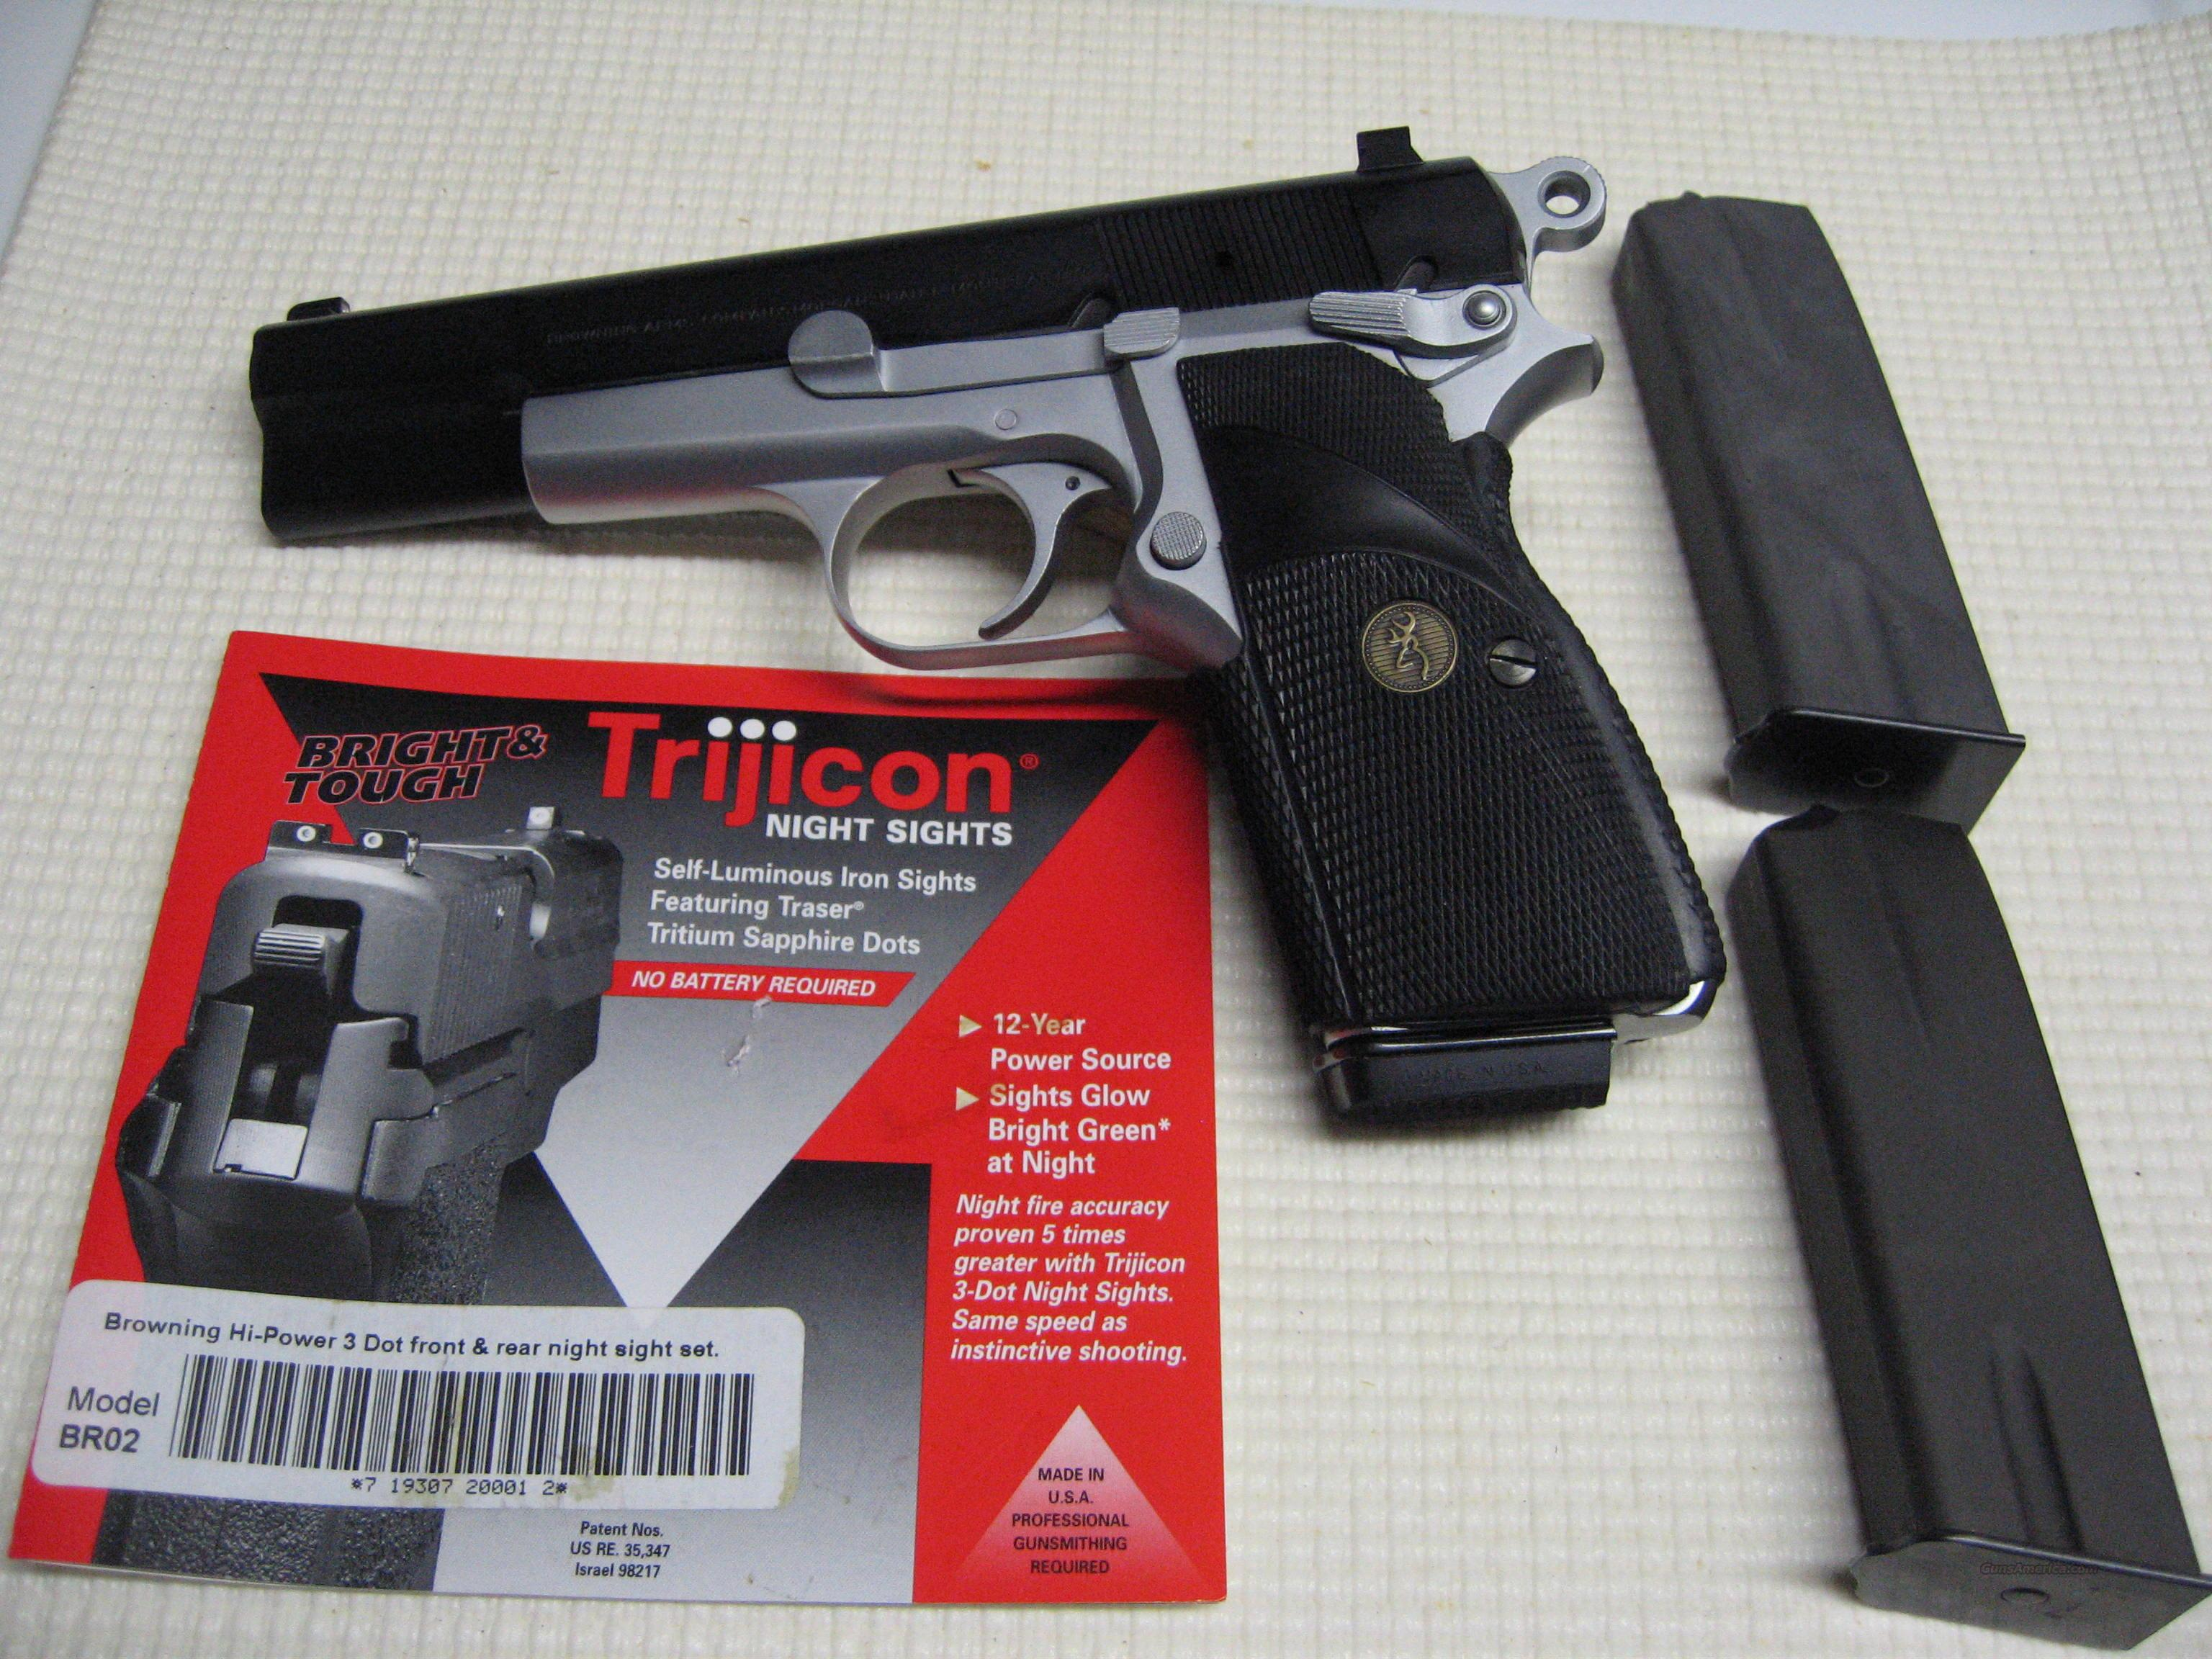 Browning Hi-Power Practical 9mm w/Trijicon Night Sights  Guns > Pistols > Browning Pistols > Hi Power